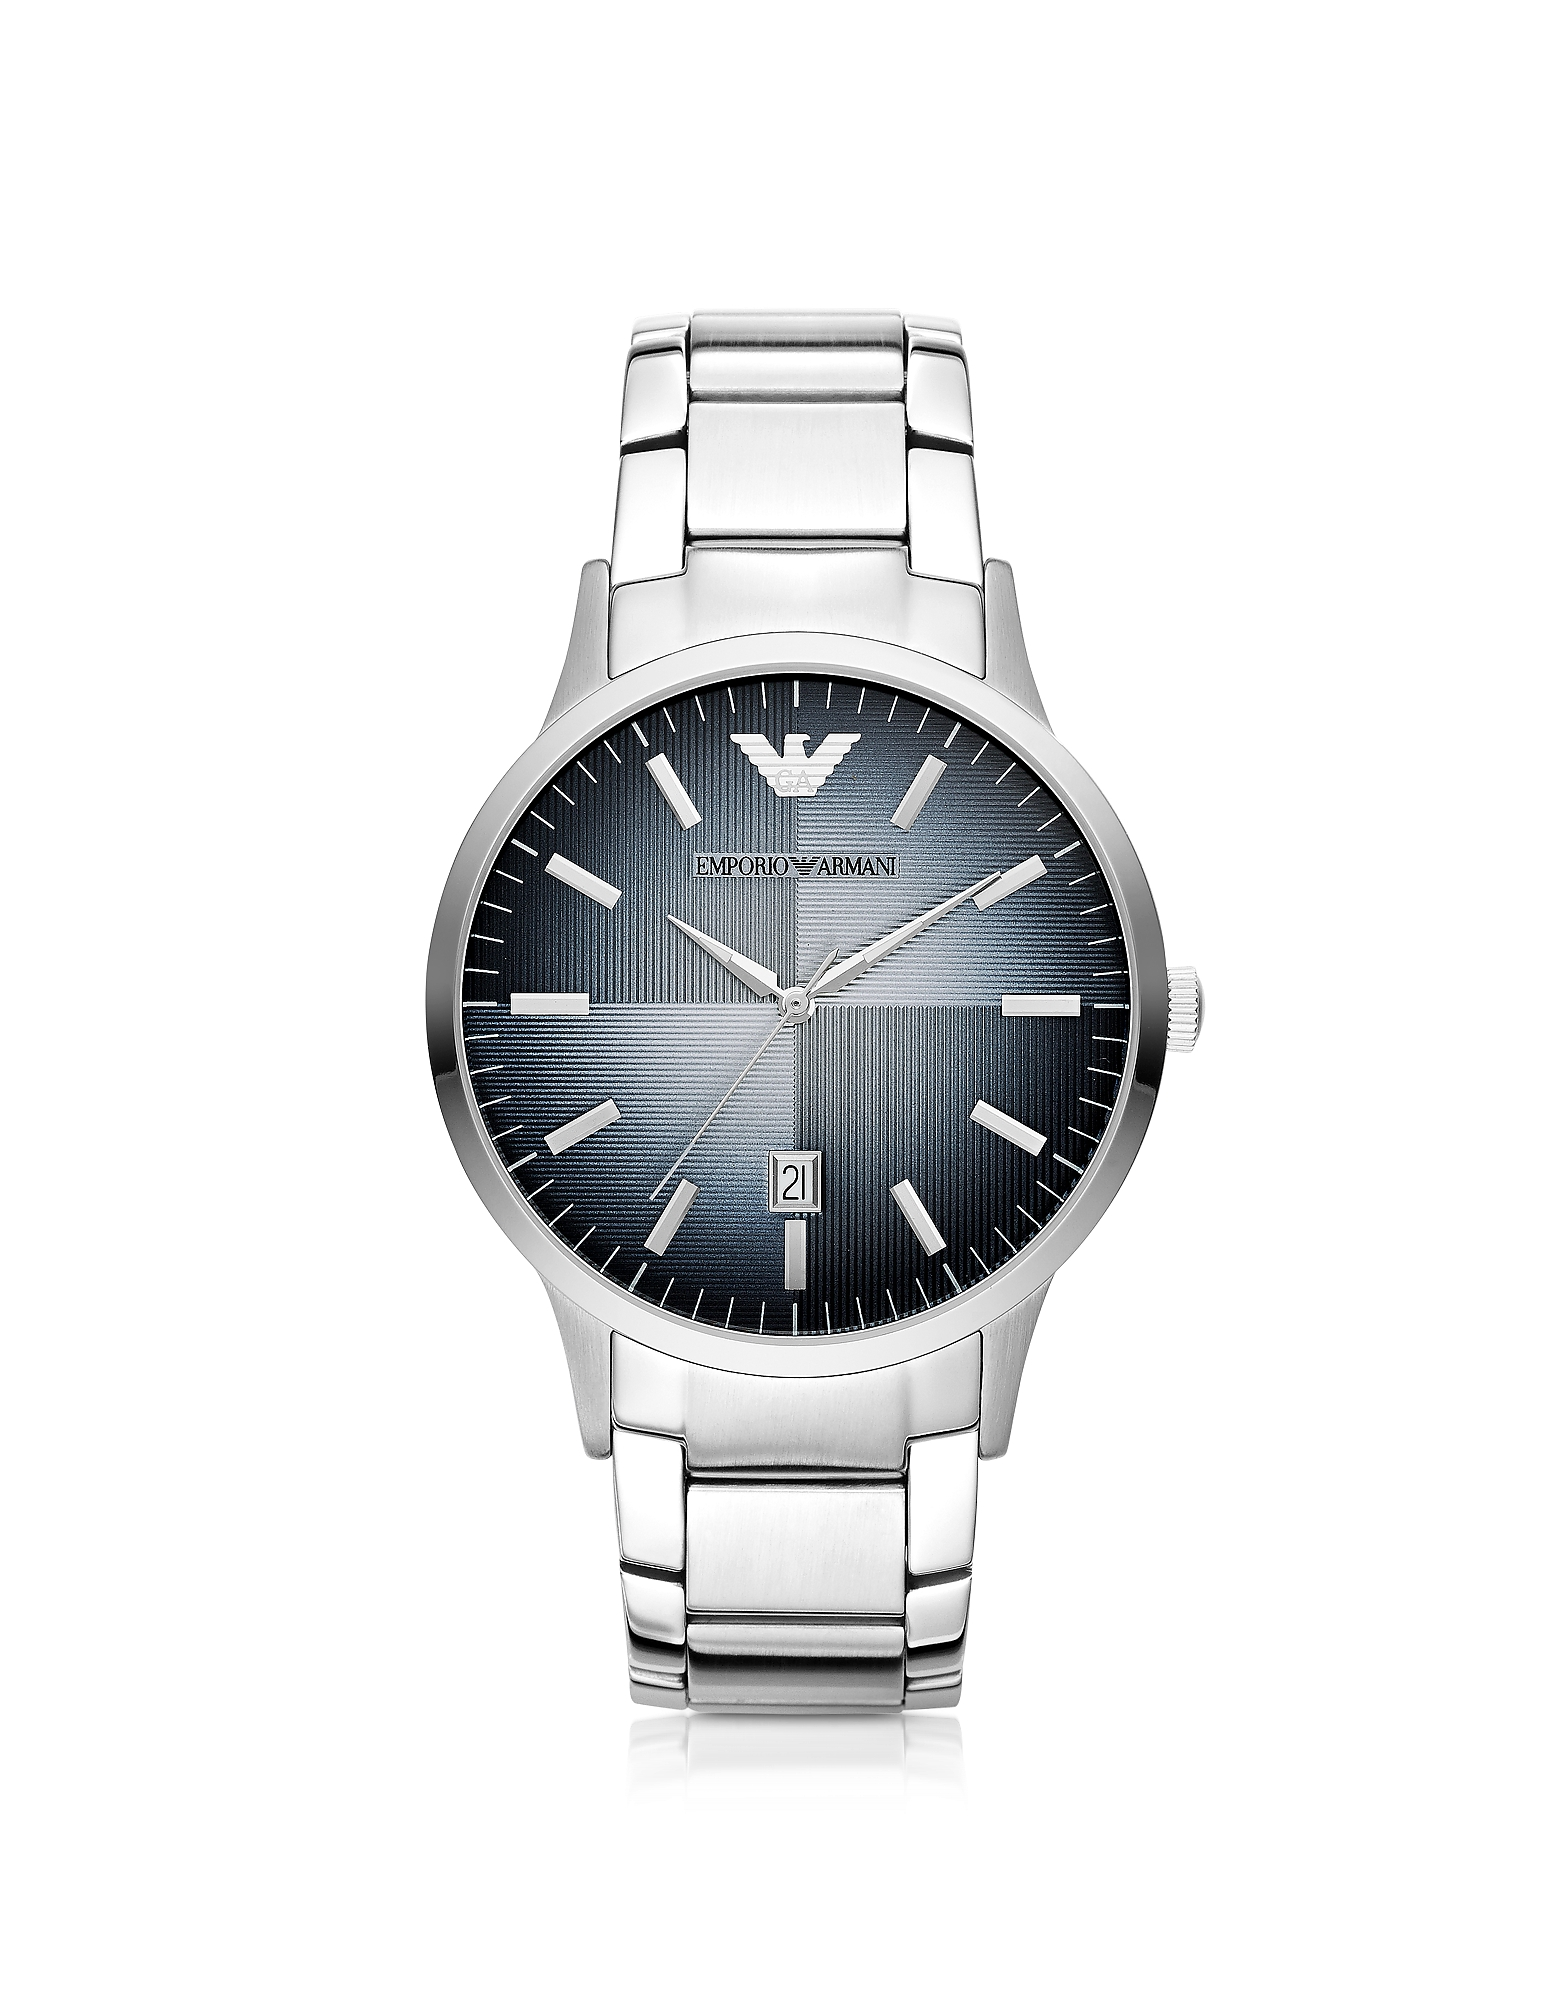 Emporio Armani Men's Watches, Stainless Steel Men's Watch